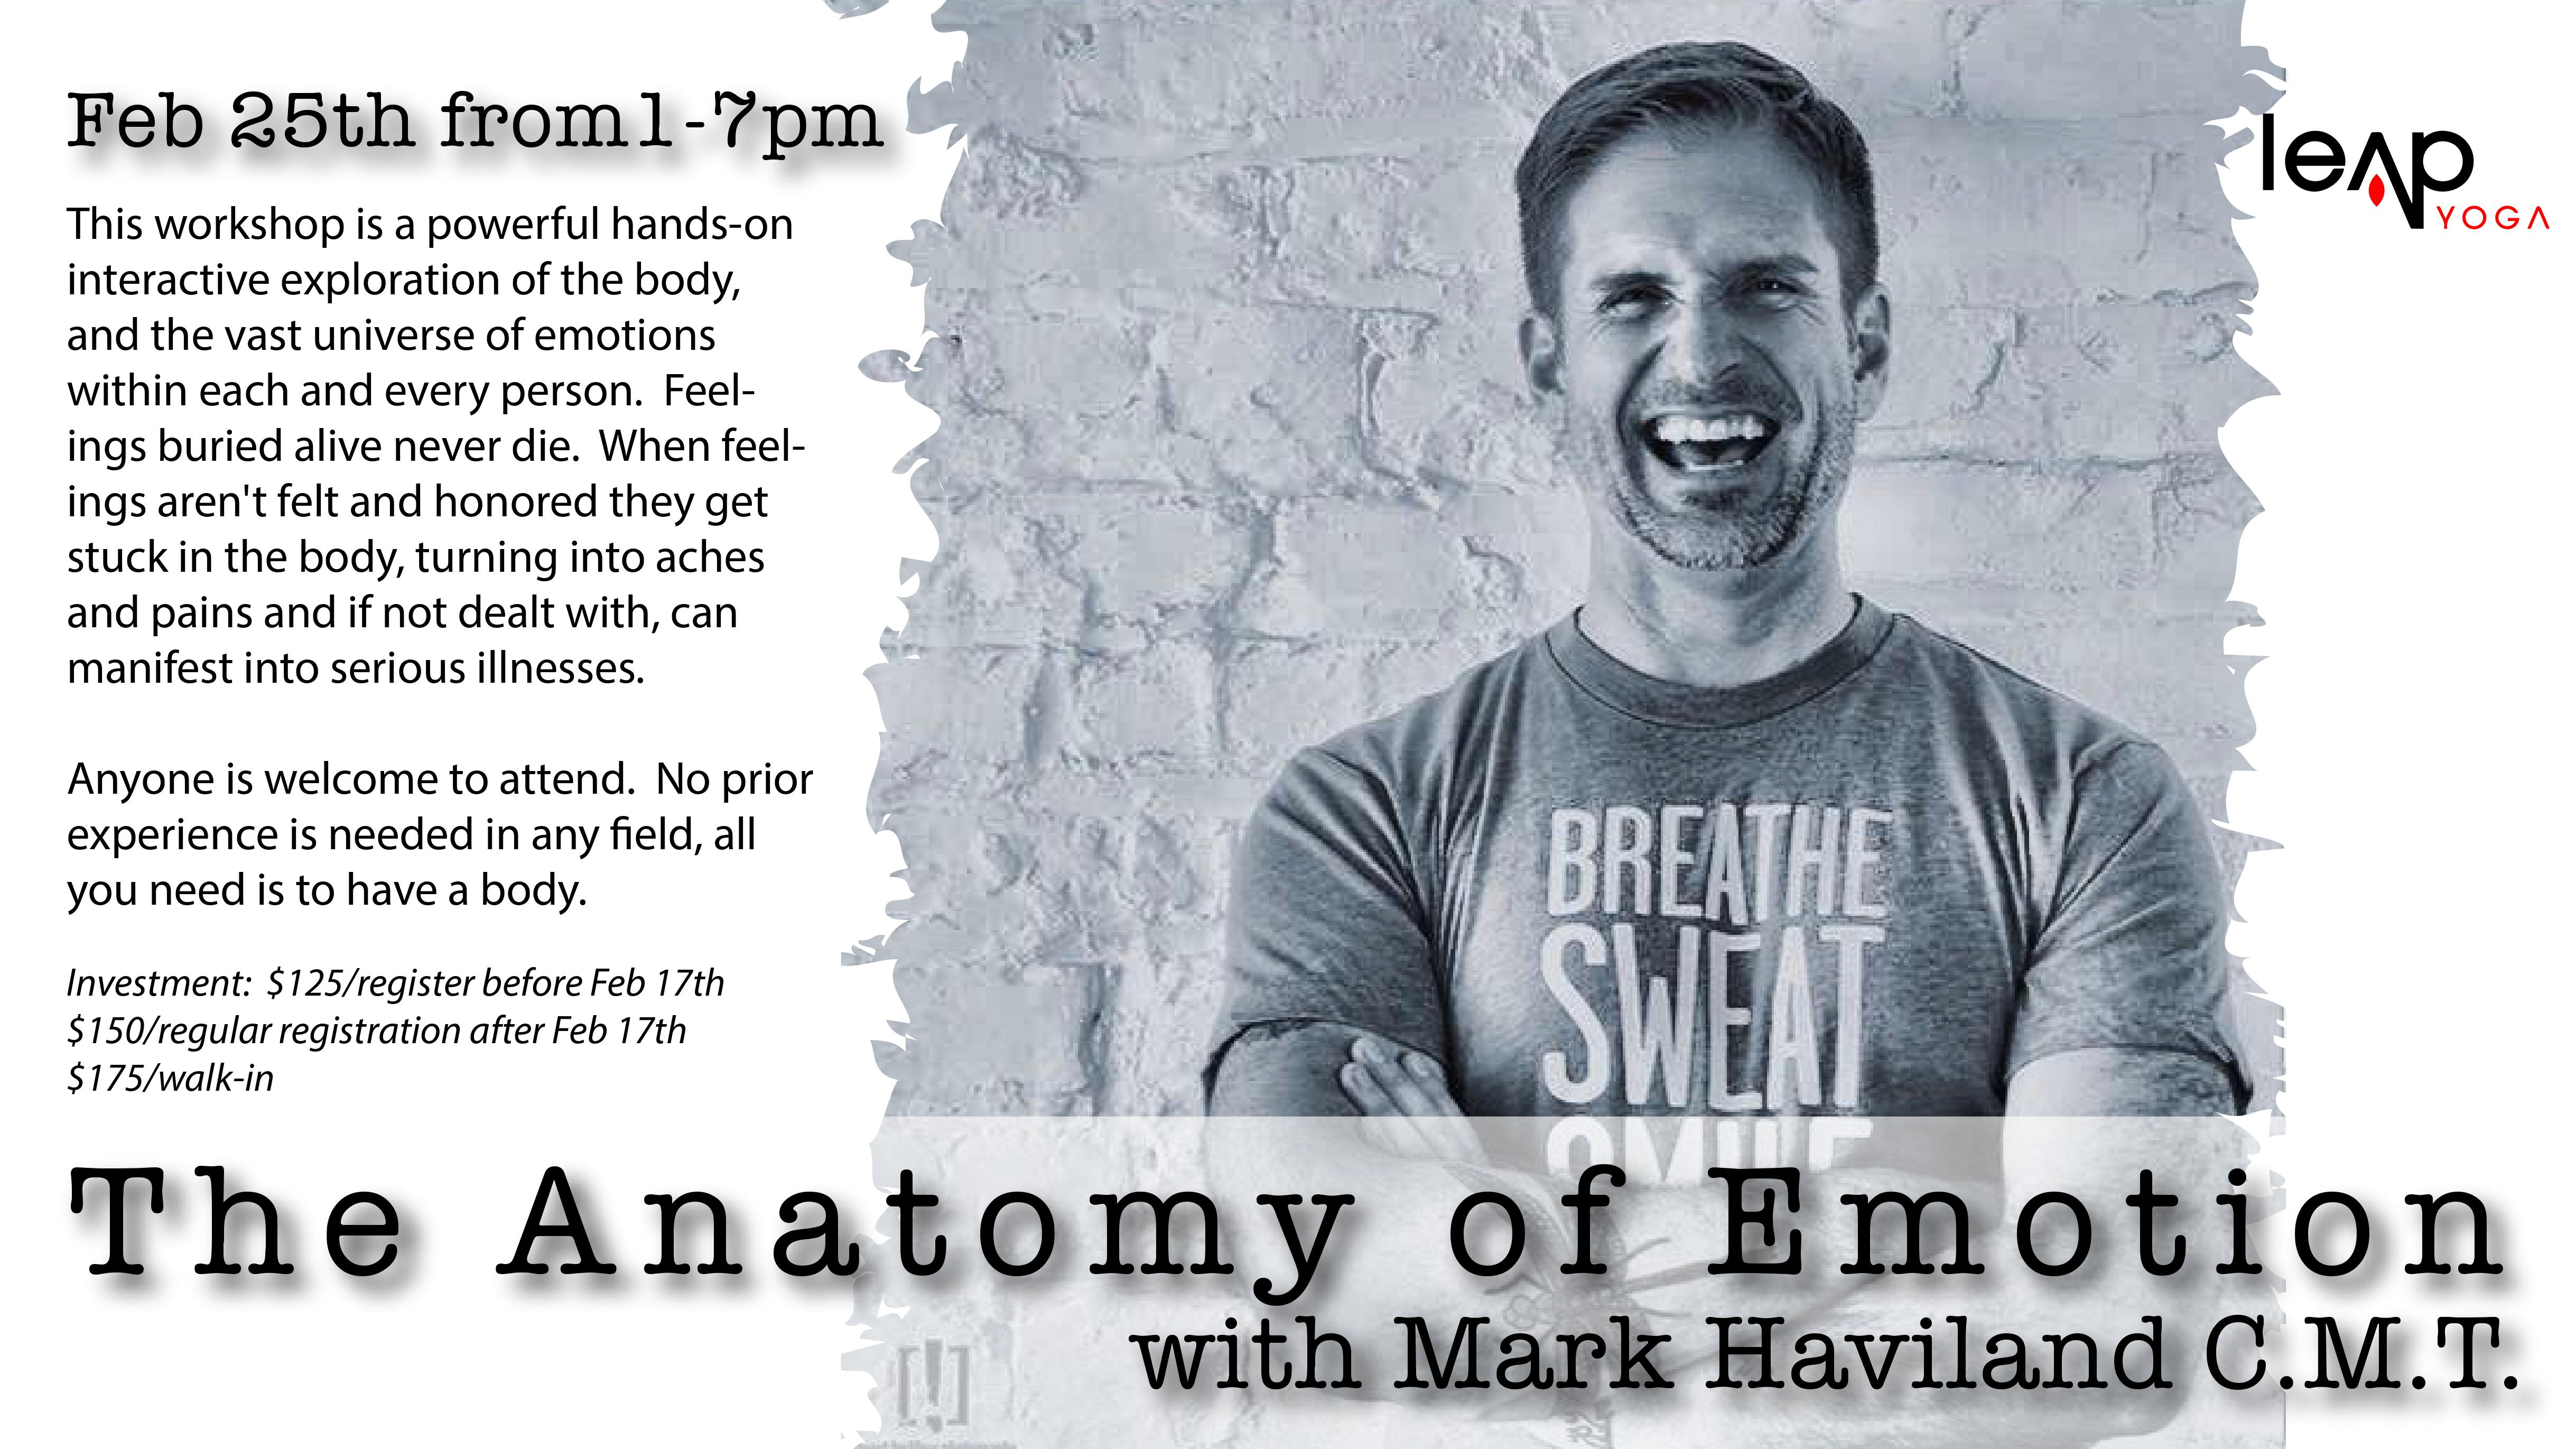 The Anatomy of Emotion with Mark Haviland C.M.T. | Leap Yoga